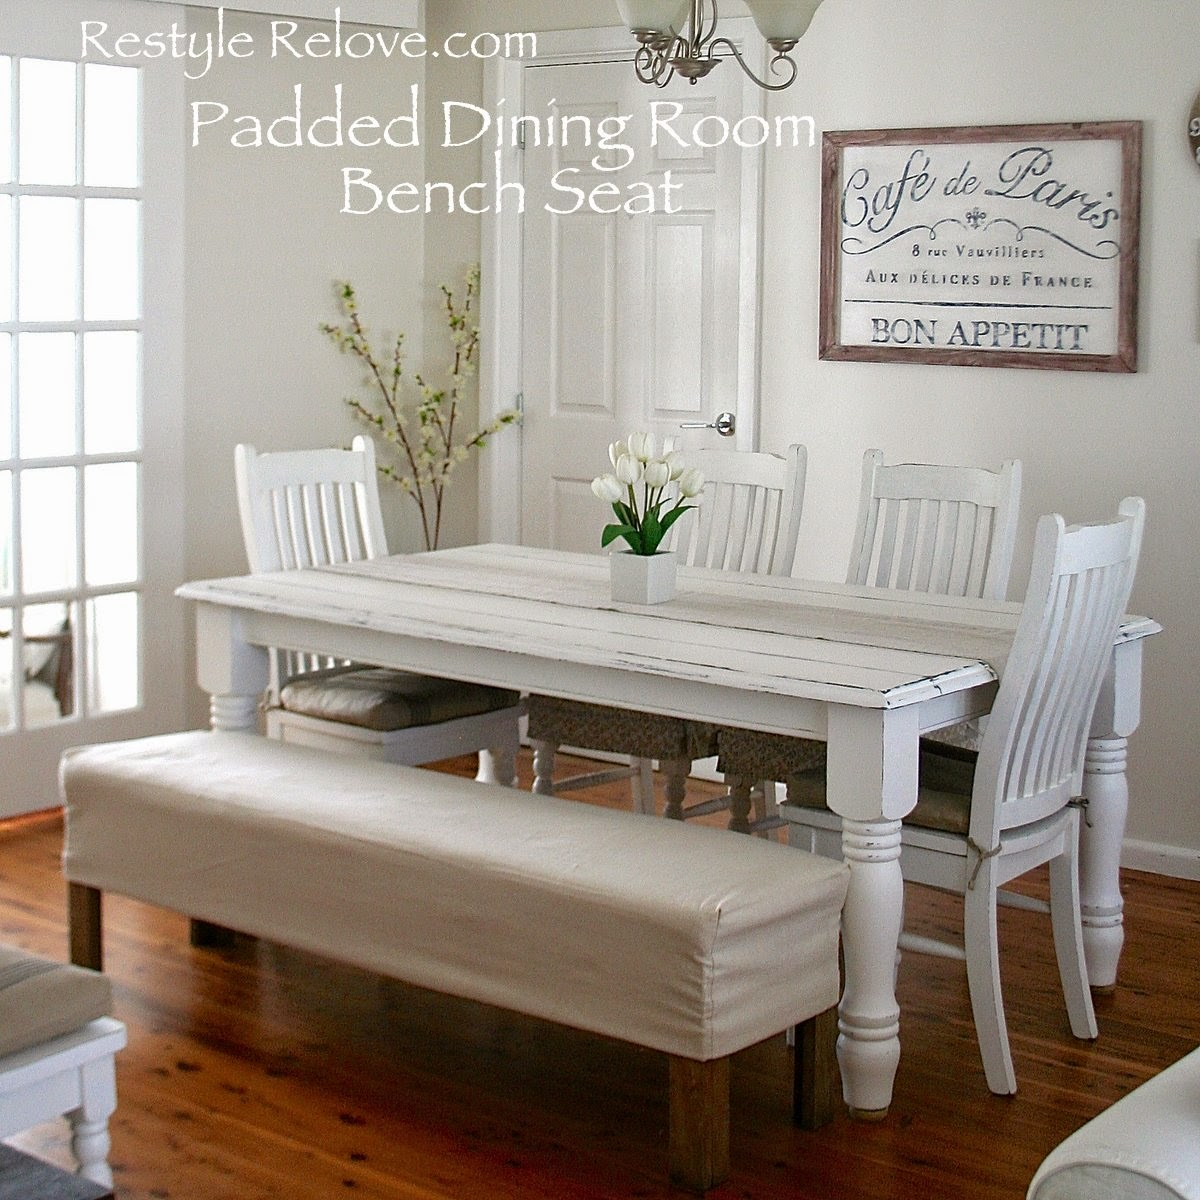 Dinette Bench Seating: Padded Dining Room Bench Seat With Removable Washable Drop